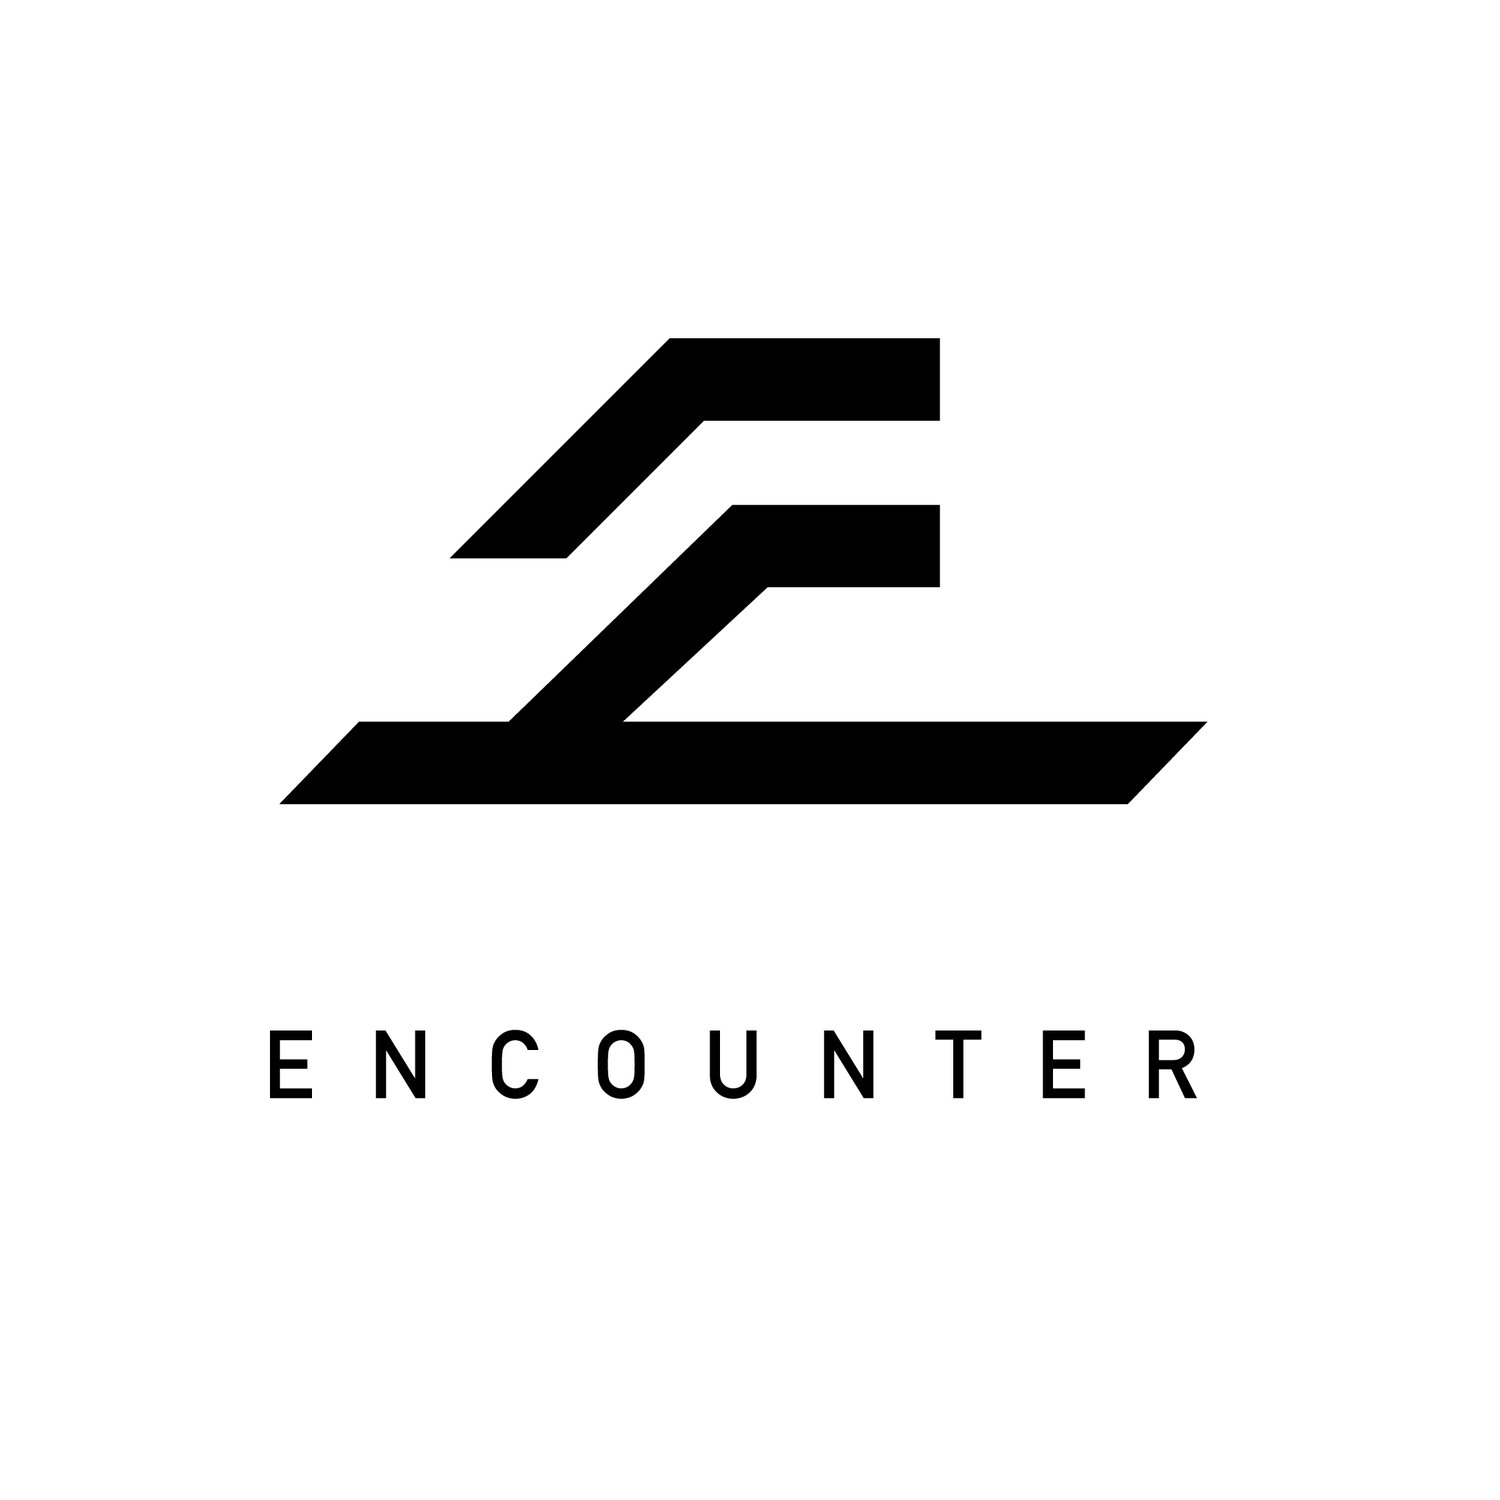 Encounter Hat Co.